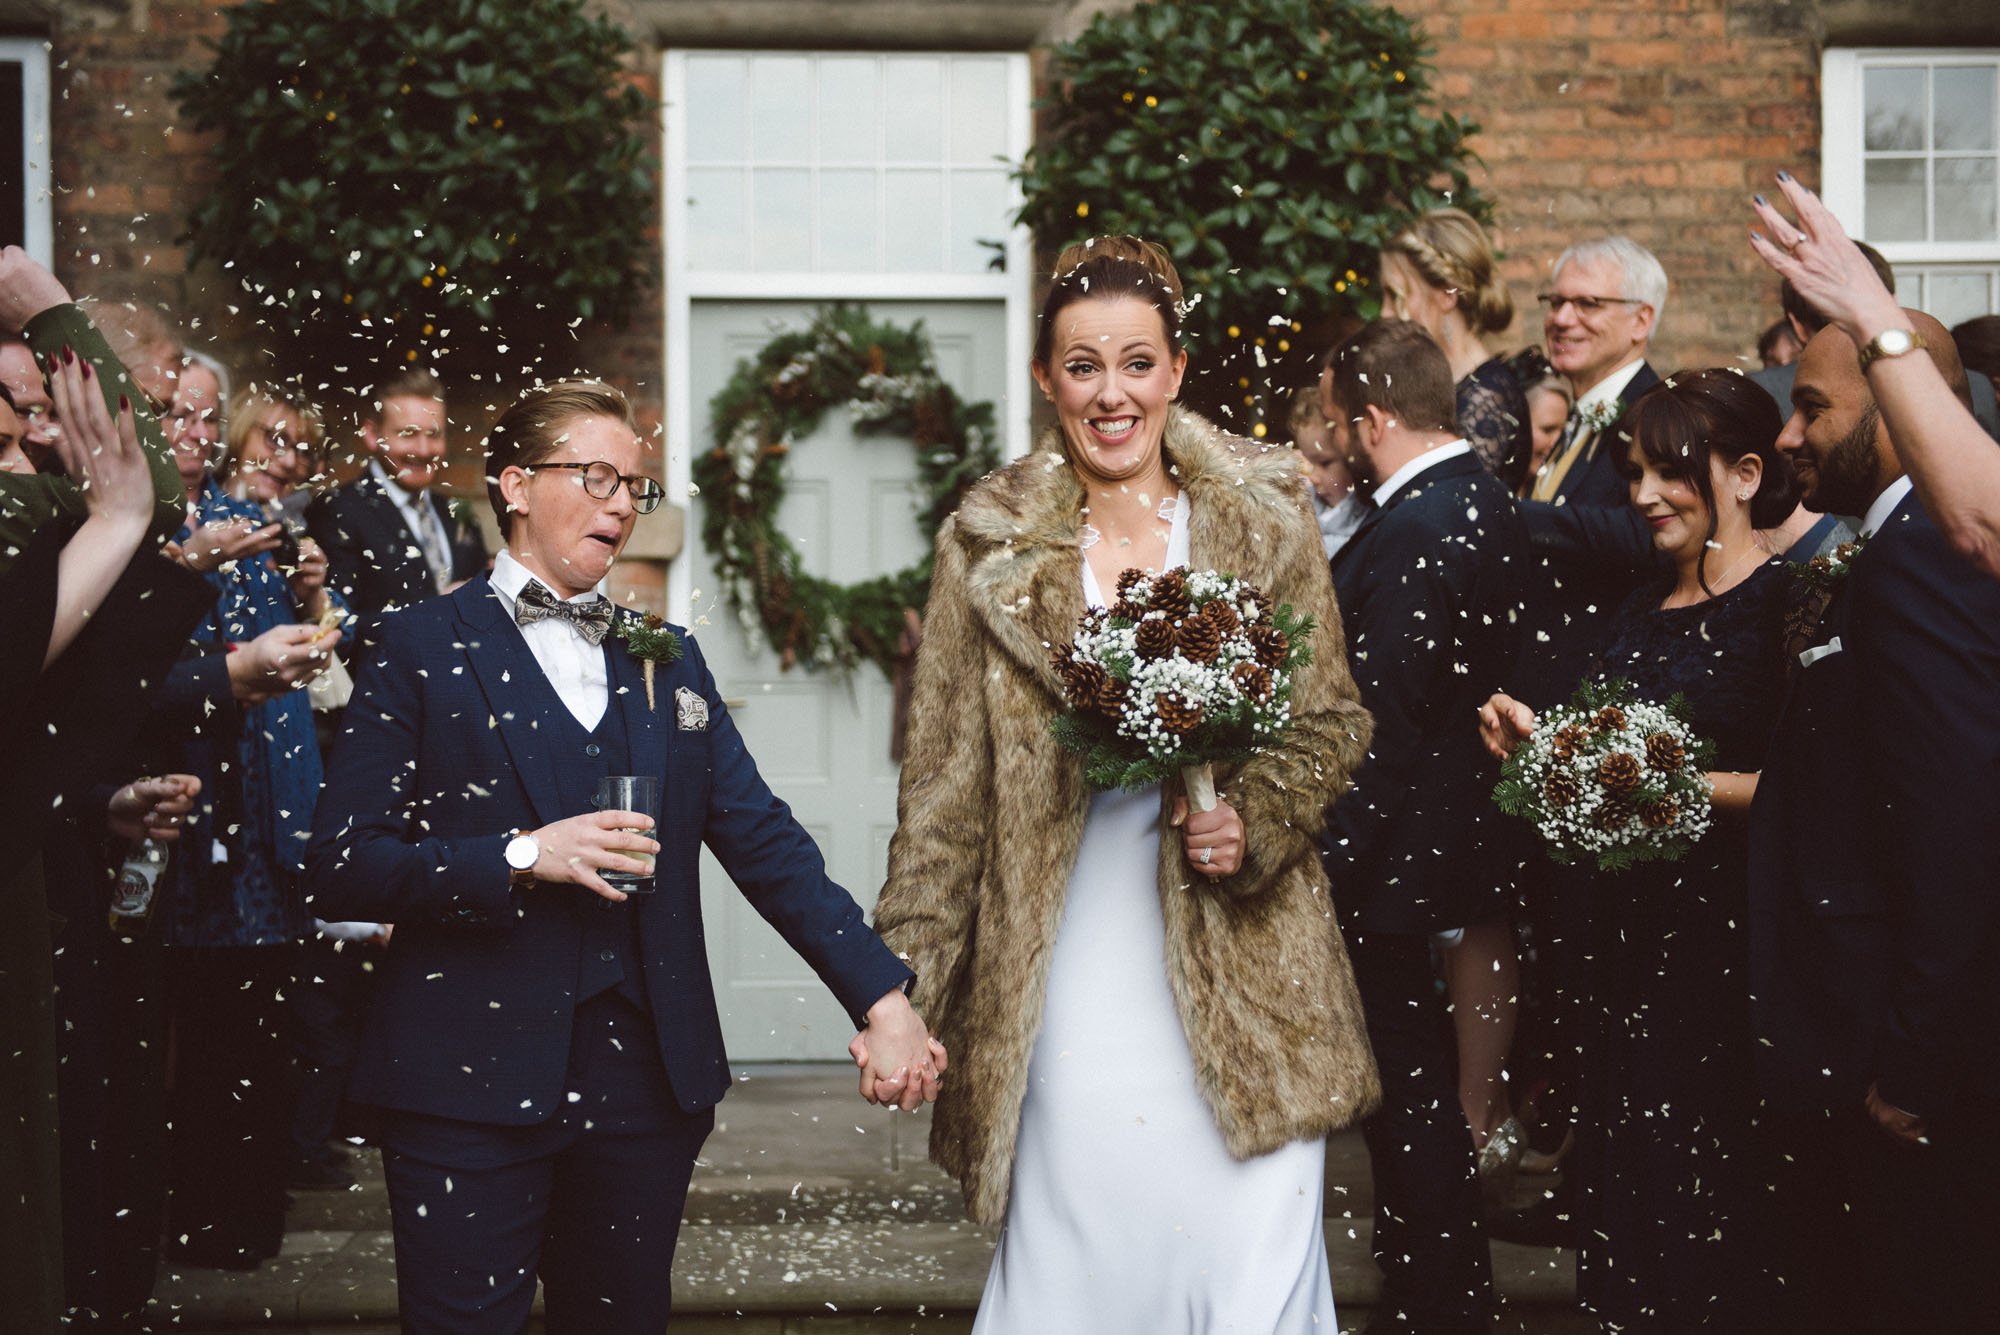 West Mill Derbyshire wedding photography - Rachael and Hayley